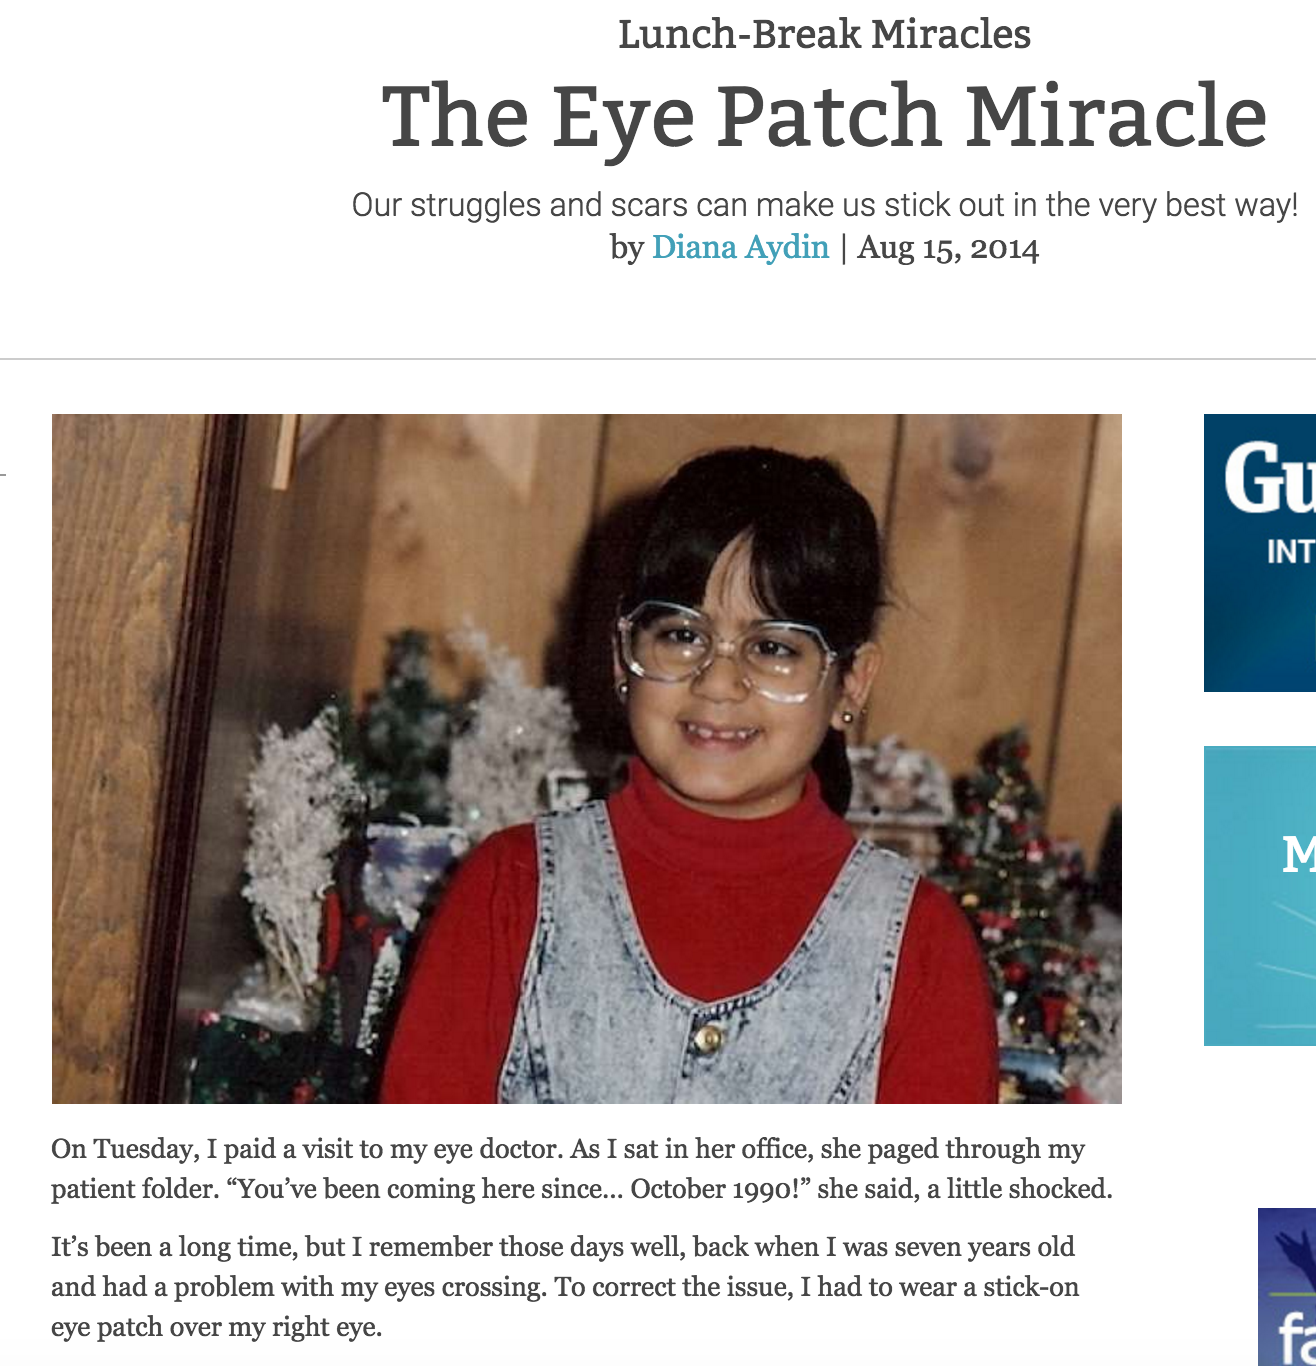 The Eye Patch Miracle